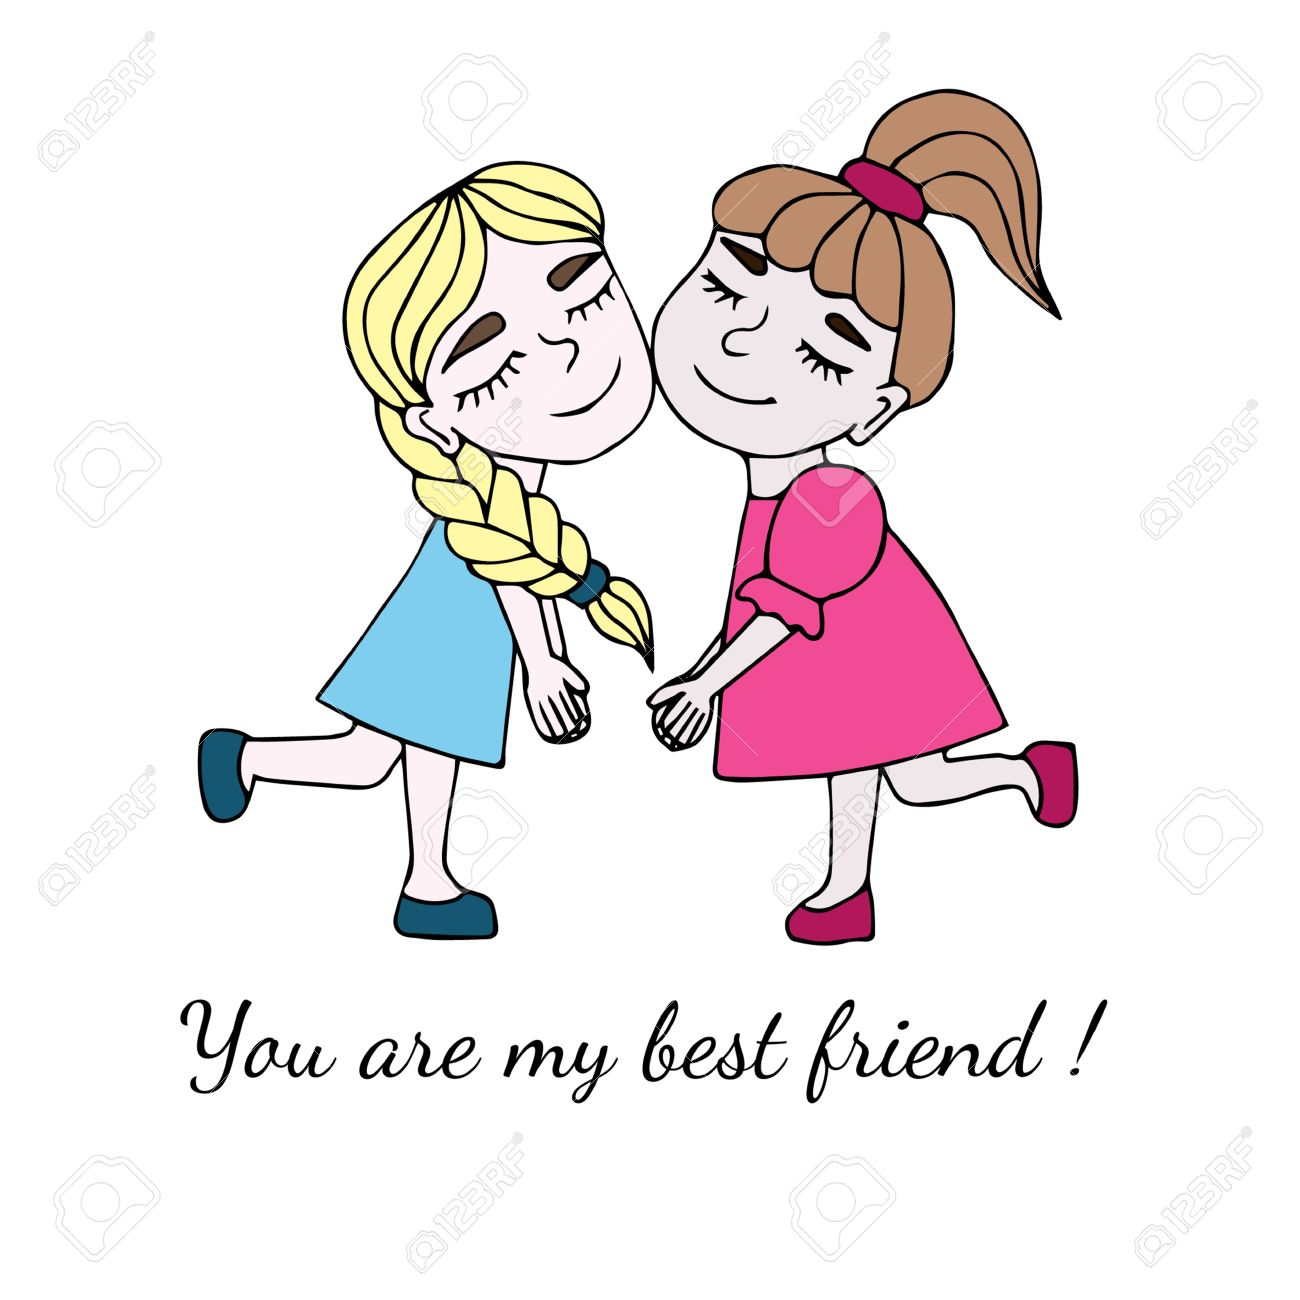 Two Best Friends Together With Inscription You Are My Best Friend